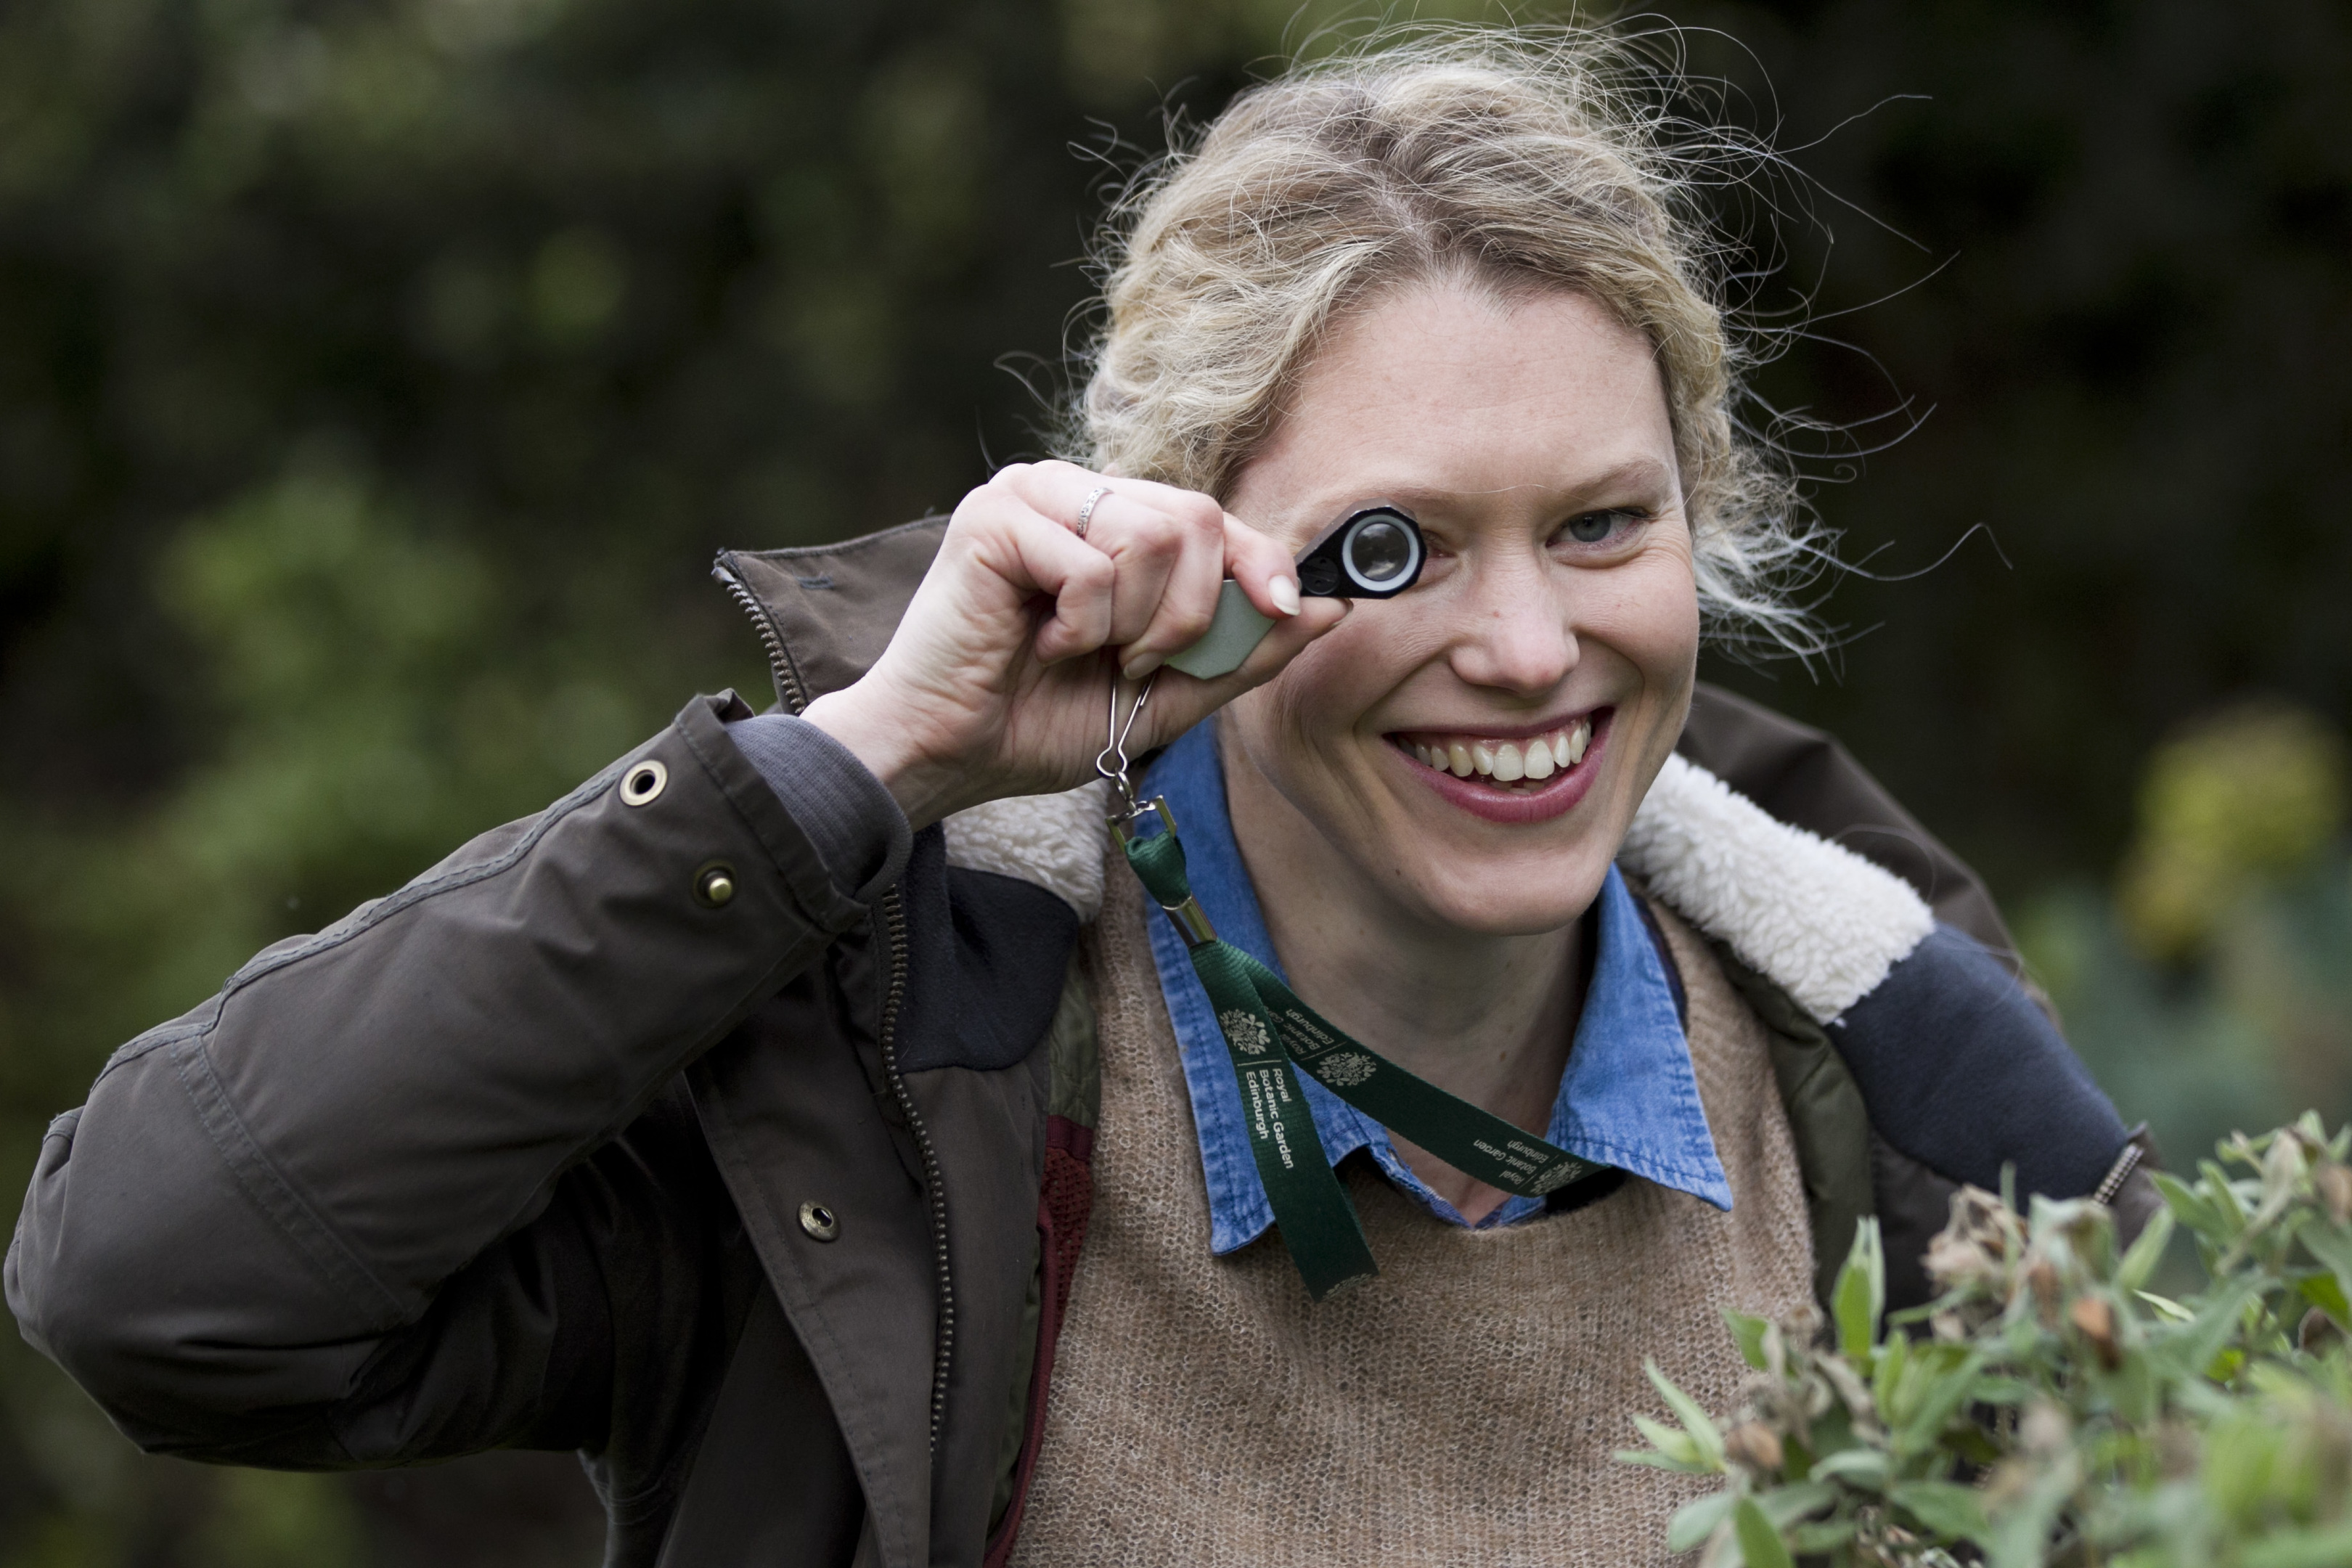 Sally Eaton, with a hand lens (Andrew Cawley)